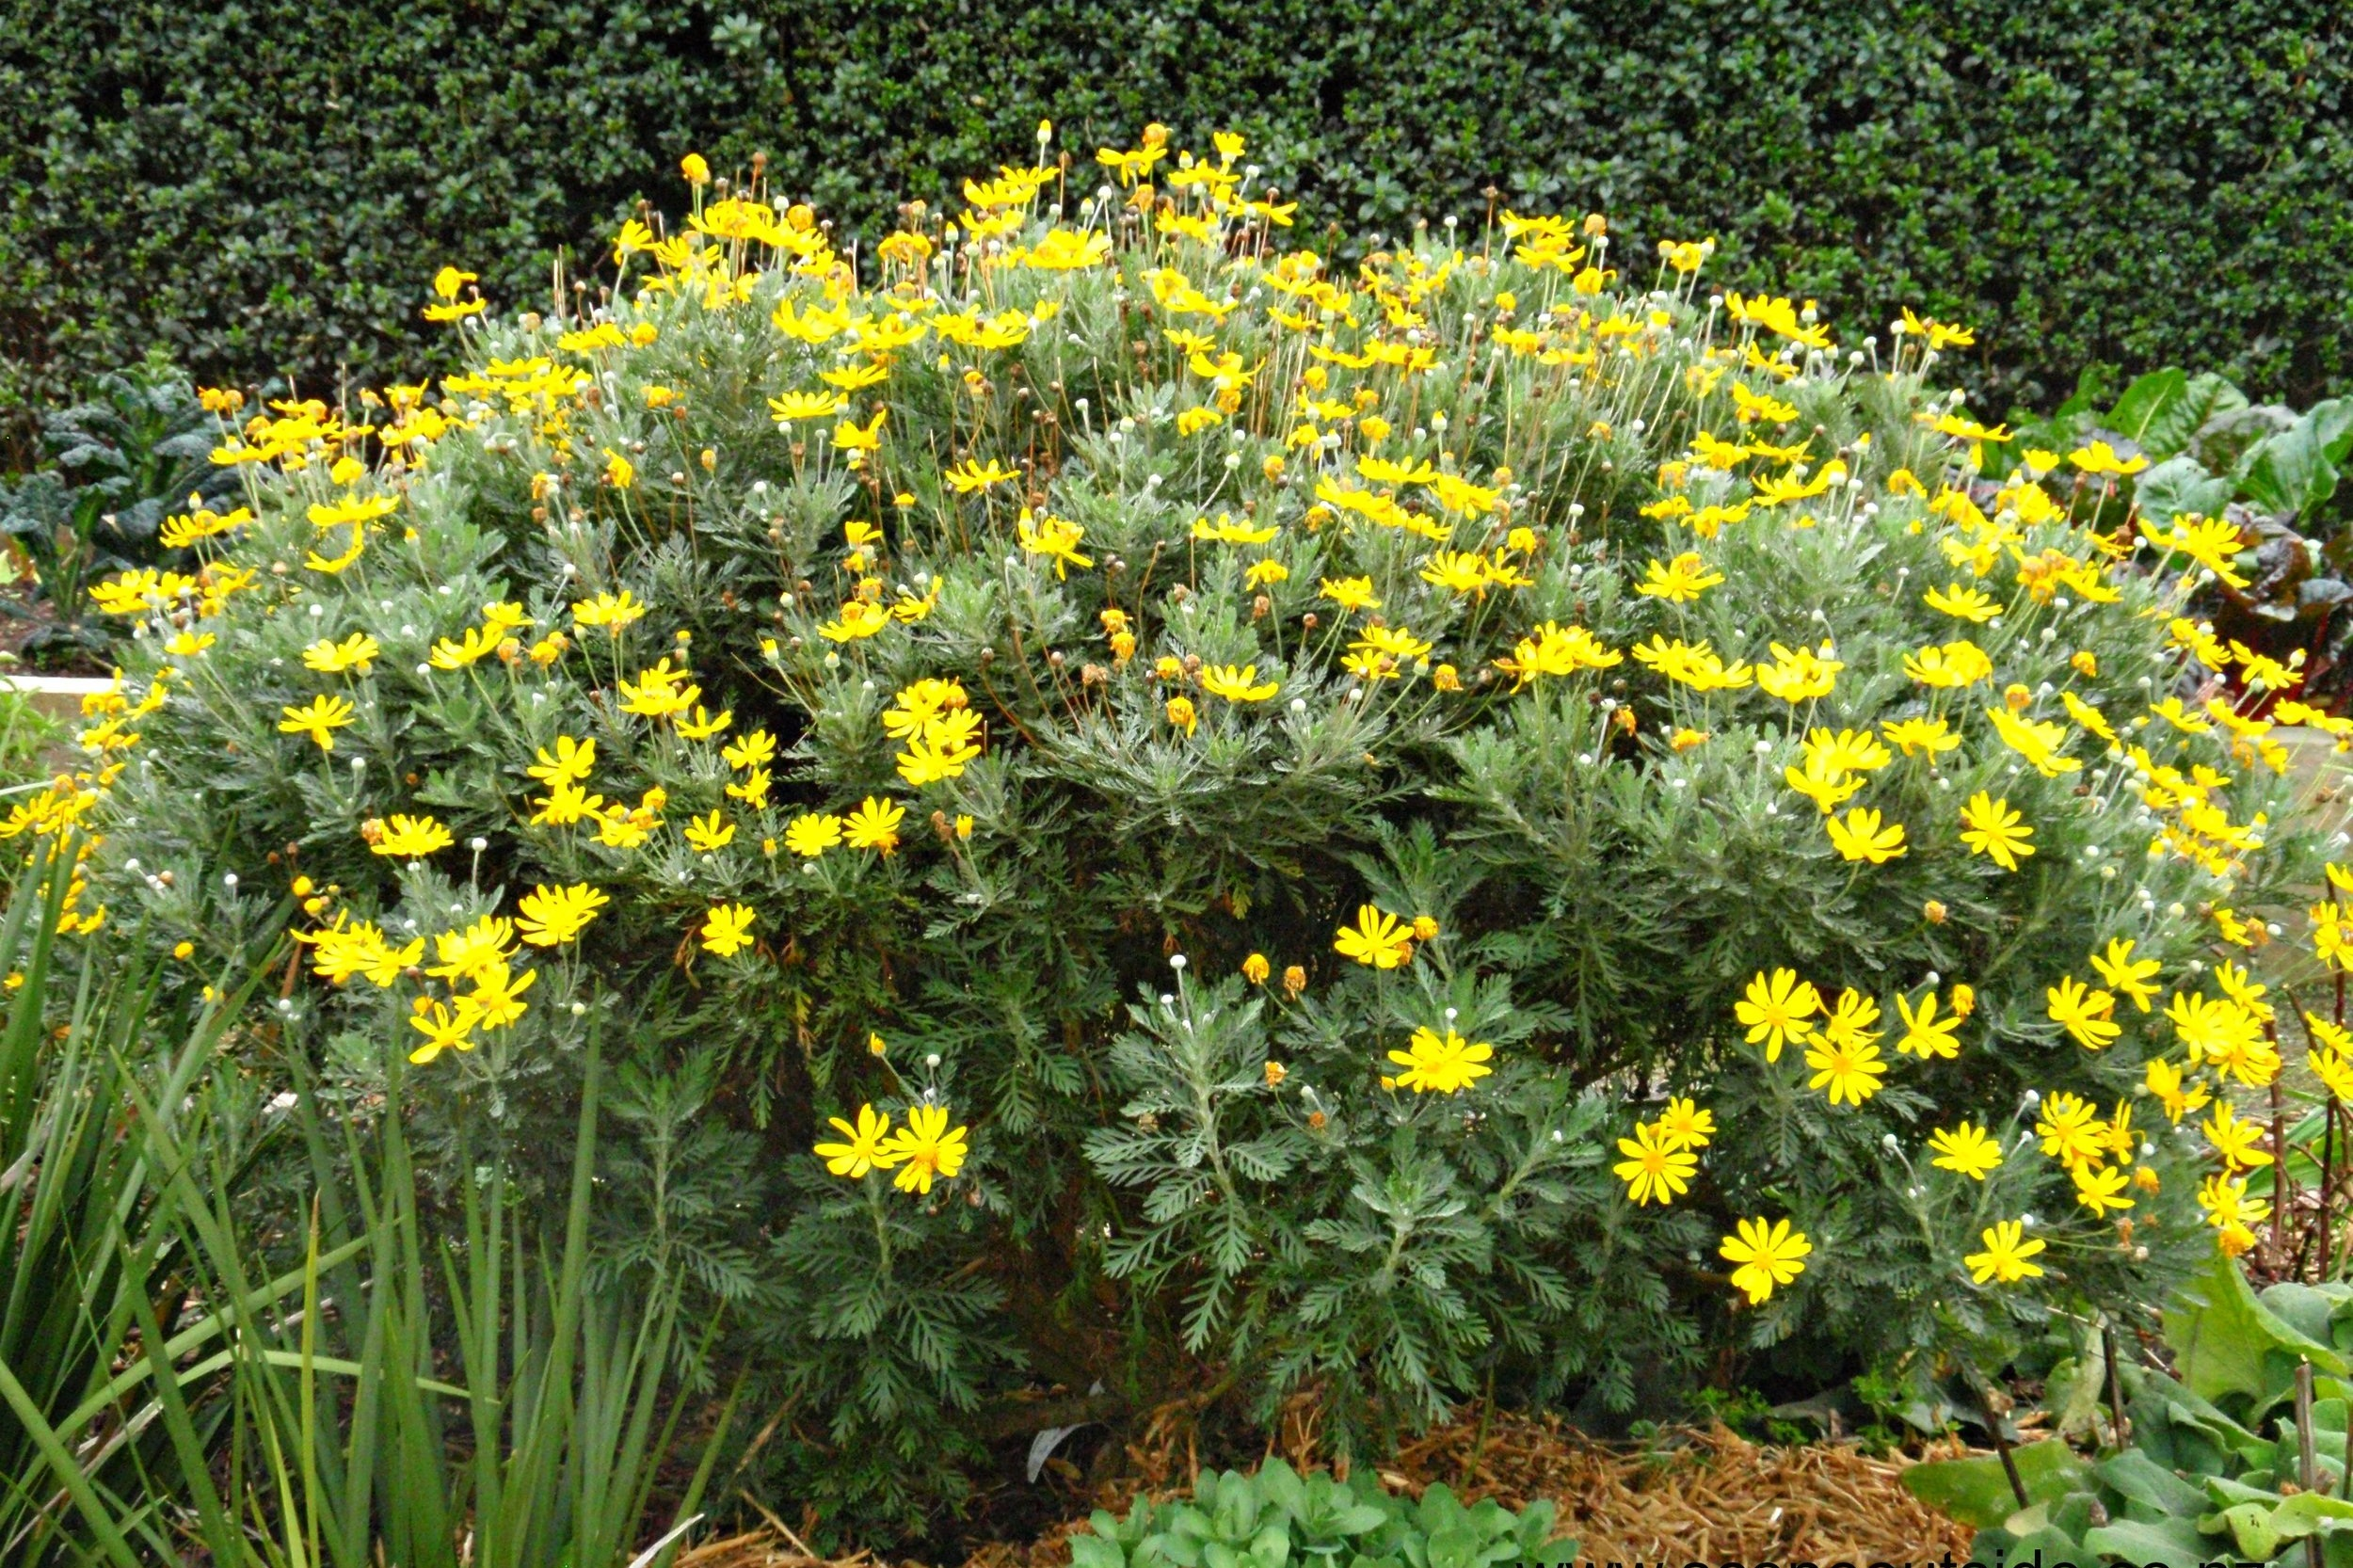 Euryops pectinatus -  Medium - Large Shrub  ⬈ Reaching a height of 3-6' and a width of 3-6' ☀ Full Sun ☂ Low / Moderate  An upright shrub of green leaves with deeply incised margins creating thin feathery lobes. The bright yellow daisy flowers rise individually on long stalks from branch tips and flowers almost continuously with peak blooms winter into spring.